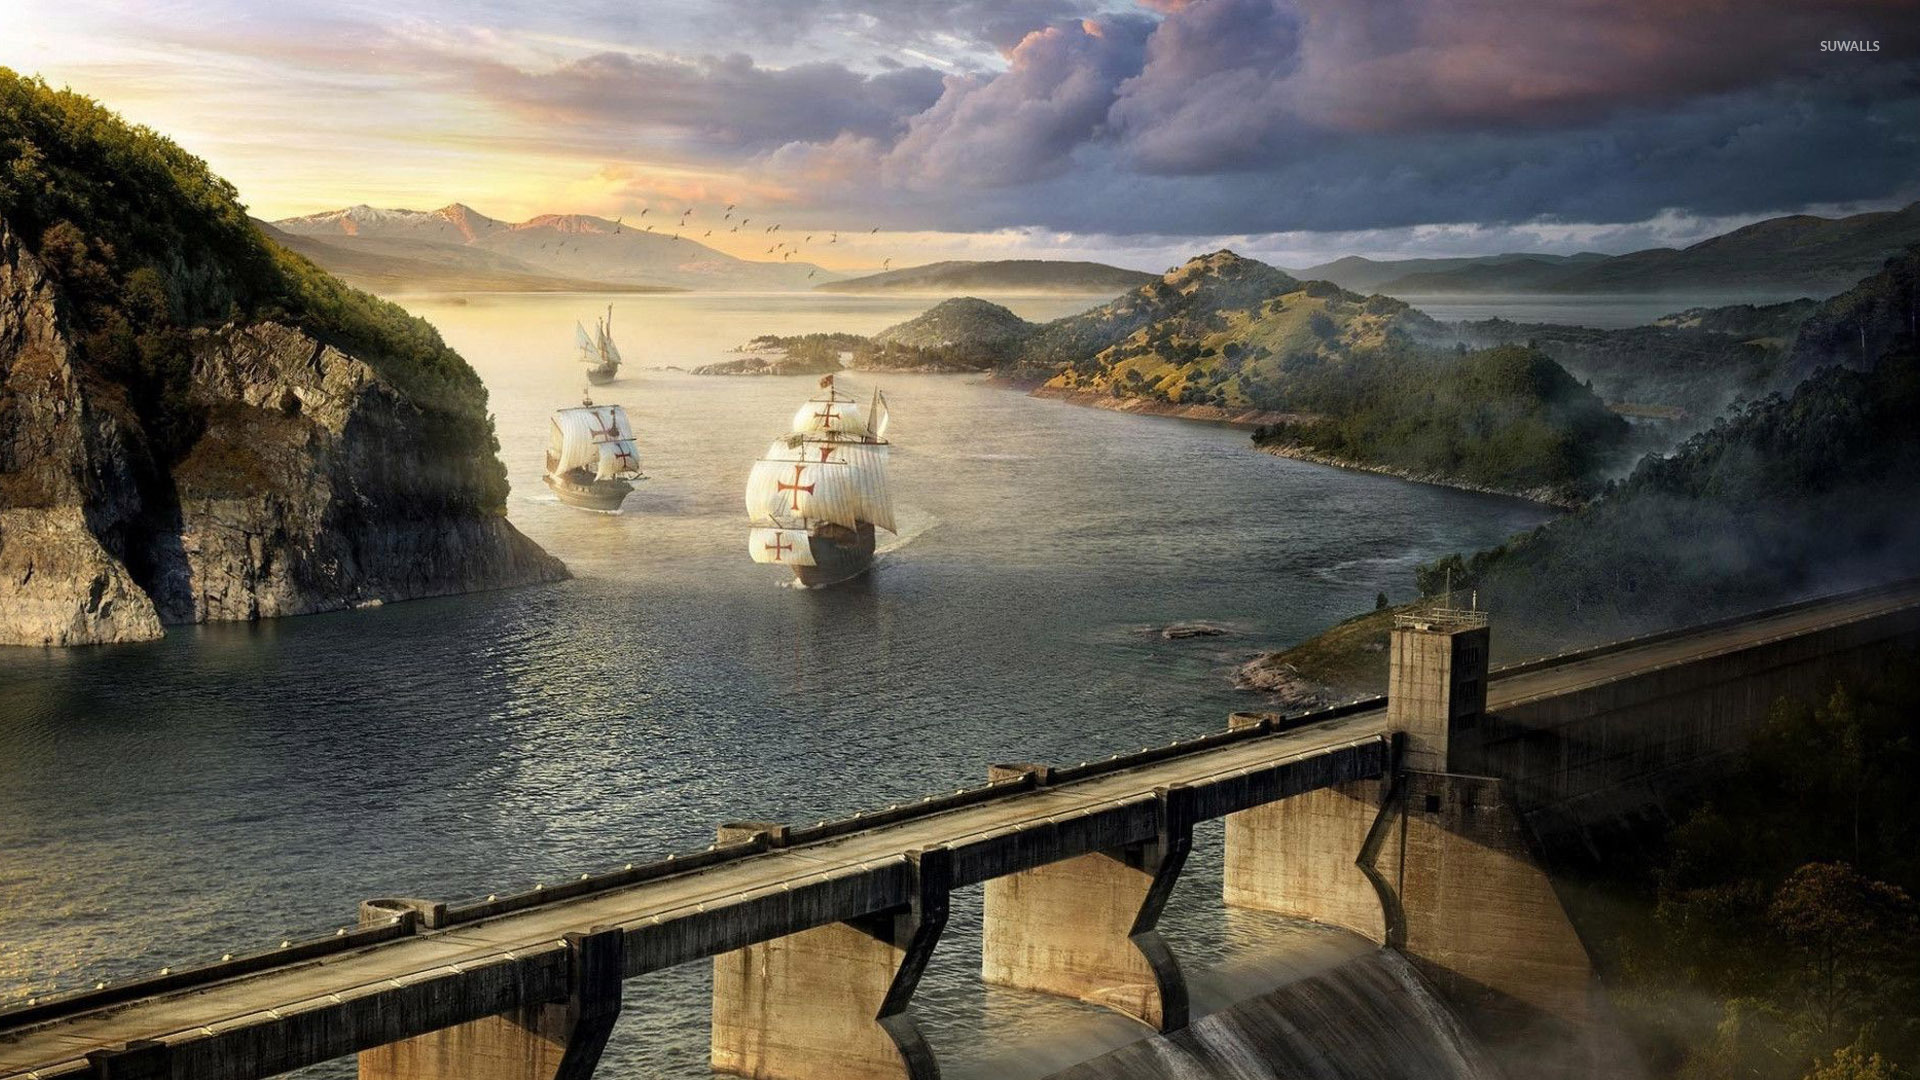 Ships near the dam wallpaper   Fantasy wallpapers   28696 1920x1080